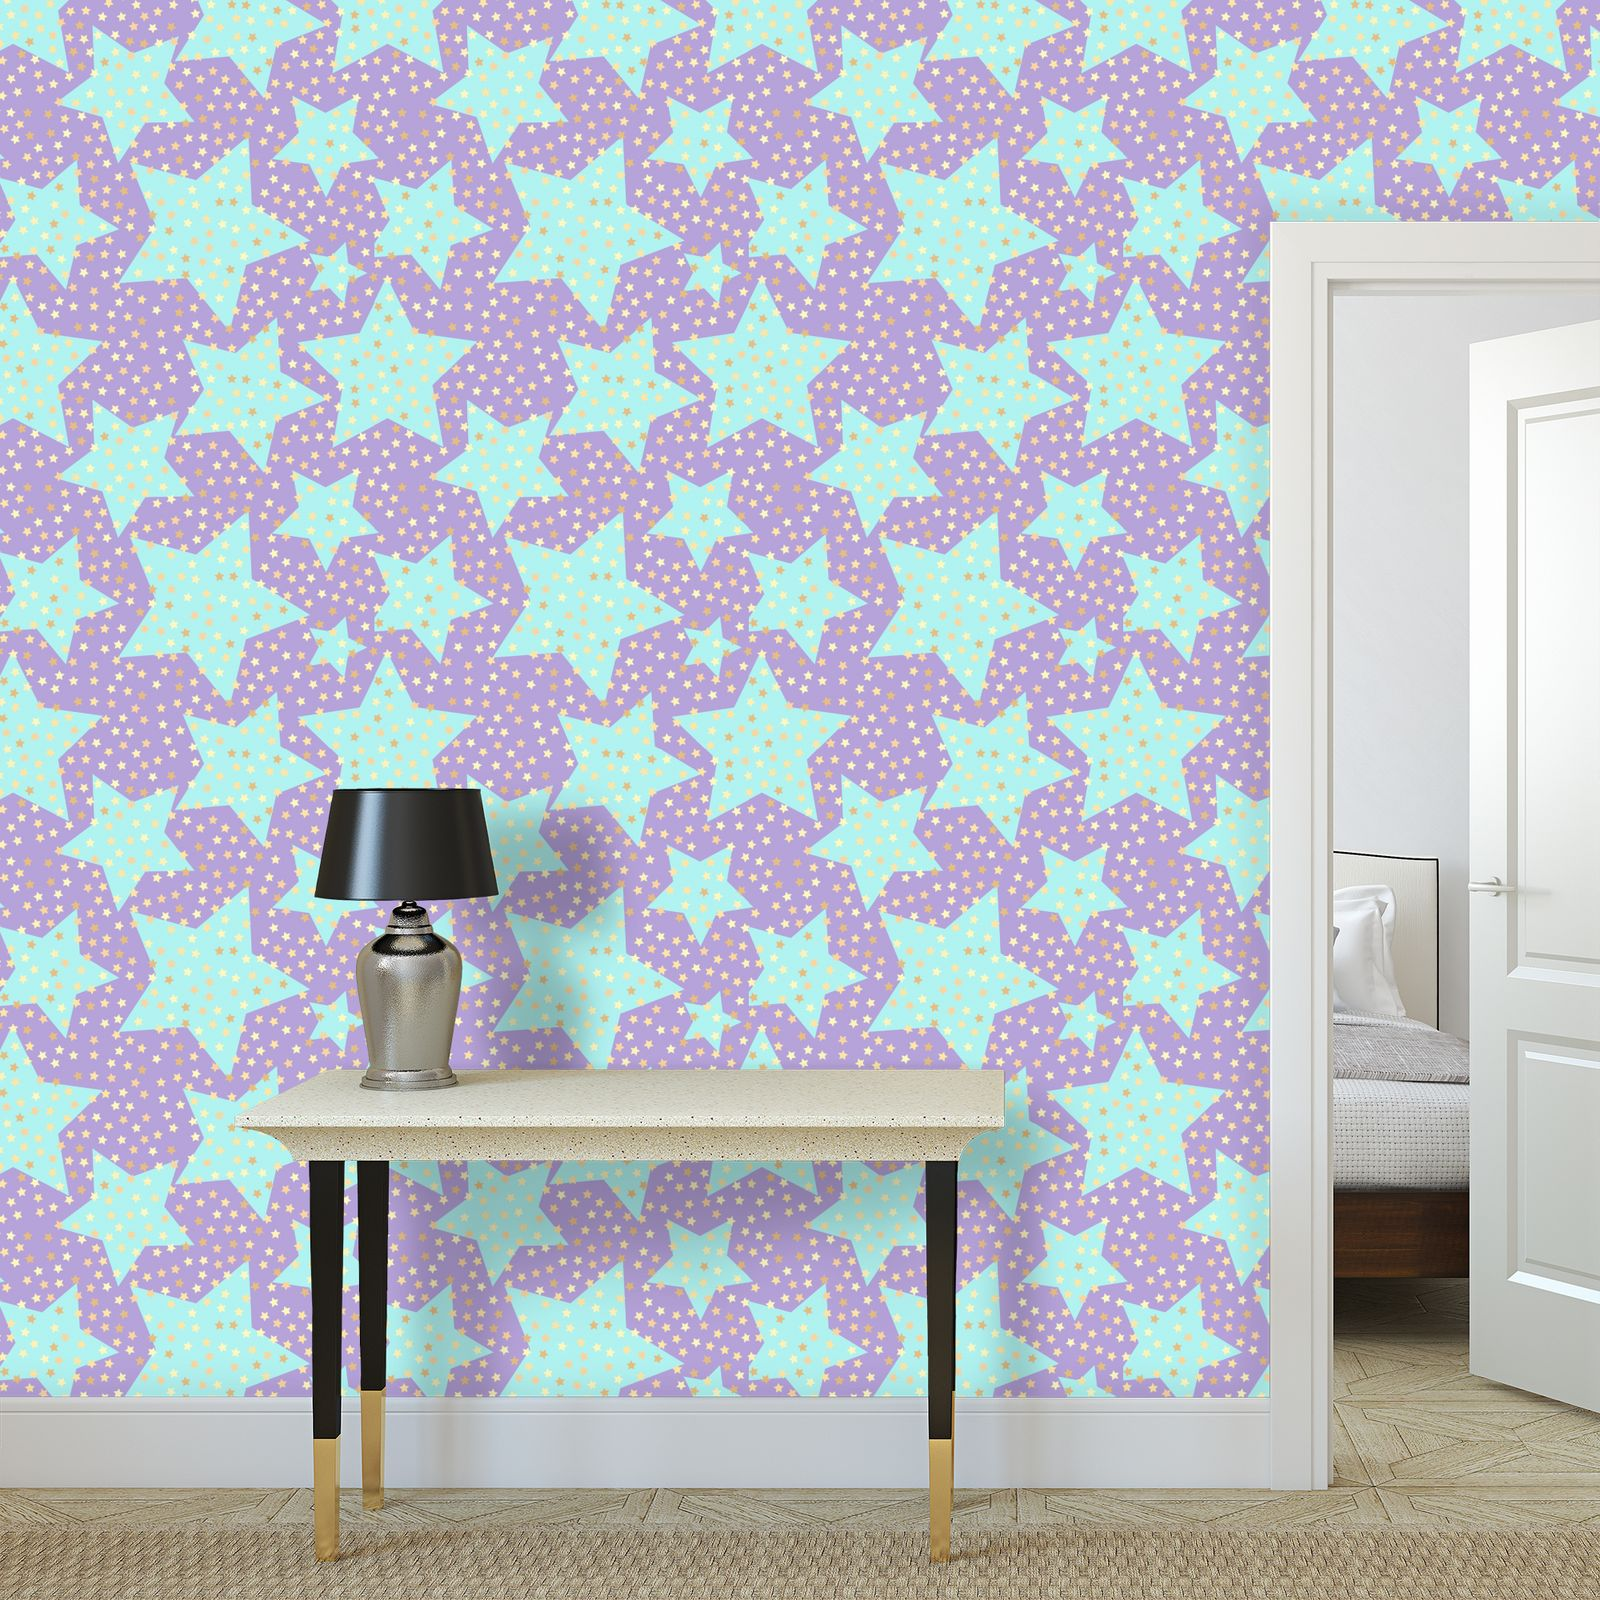 Luck Star - Wallpaper Rolls - starry sky, lovely, soft, Turquoise, purple, lilac, baby nursery, kid